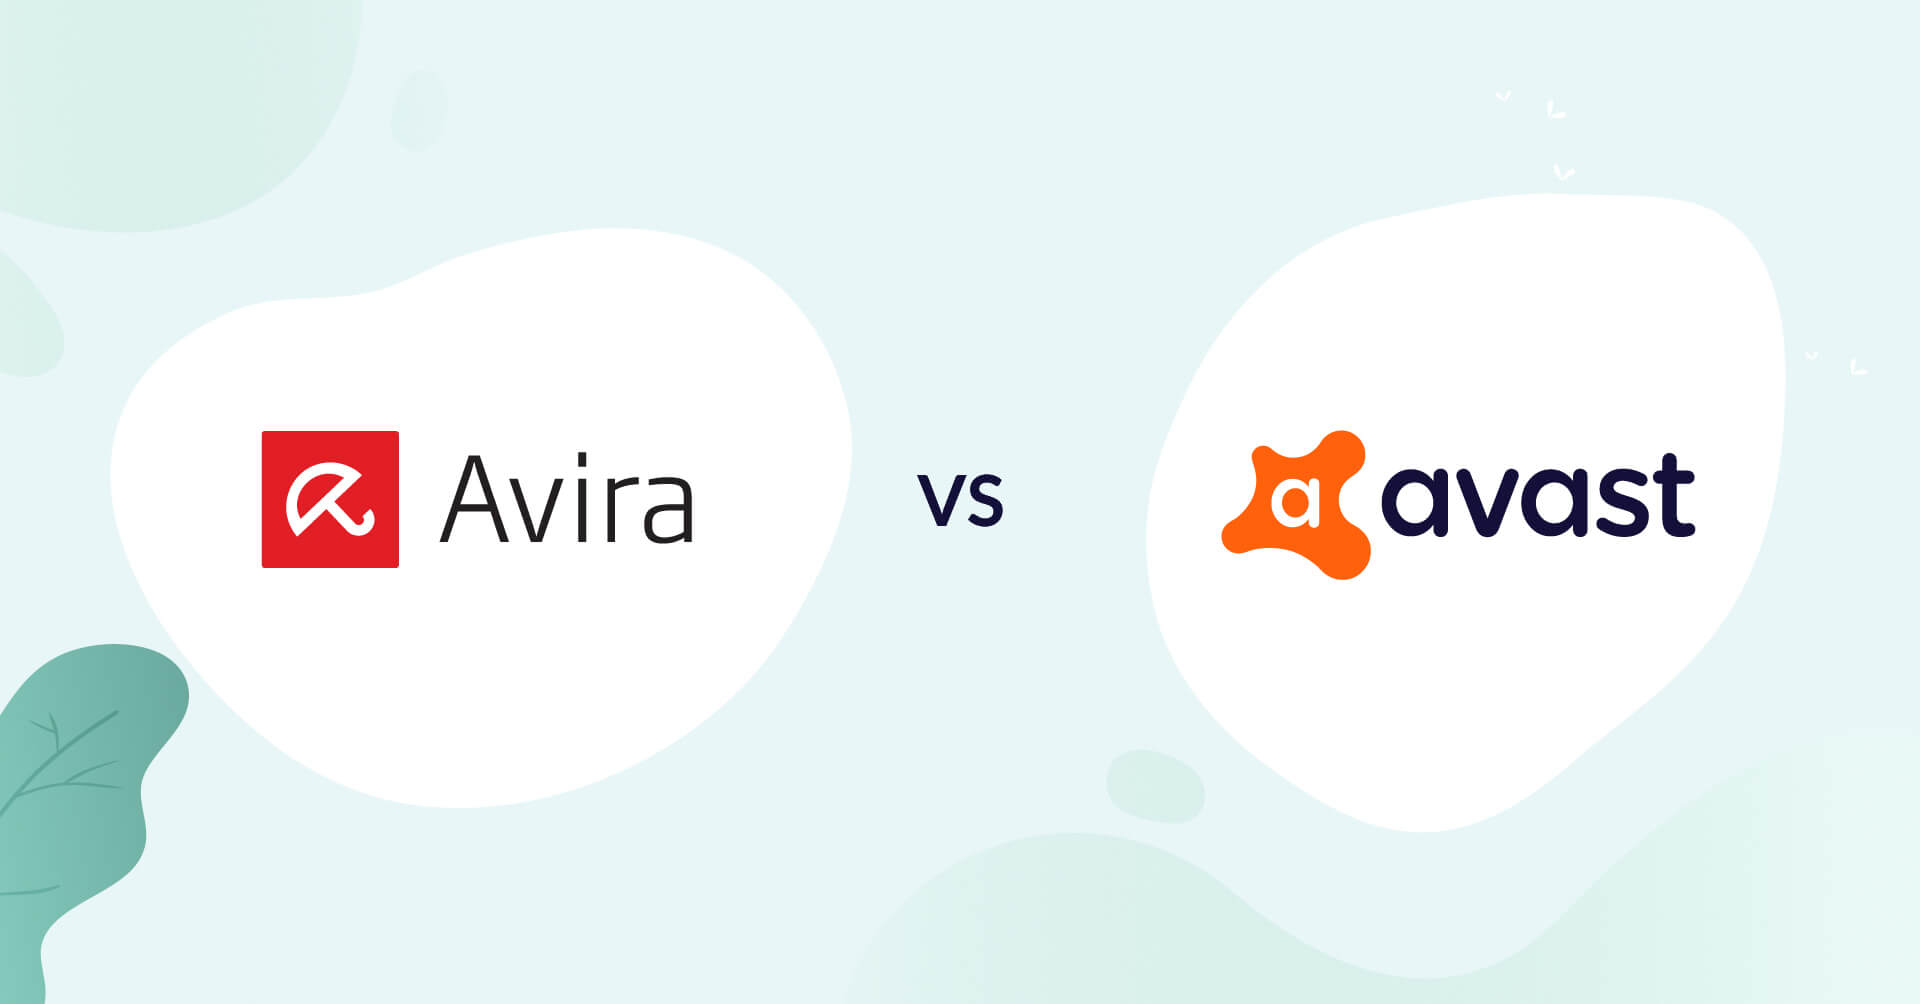 avira logo vs avast logo antivirus comparison header for how to choose article